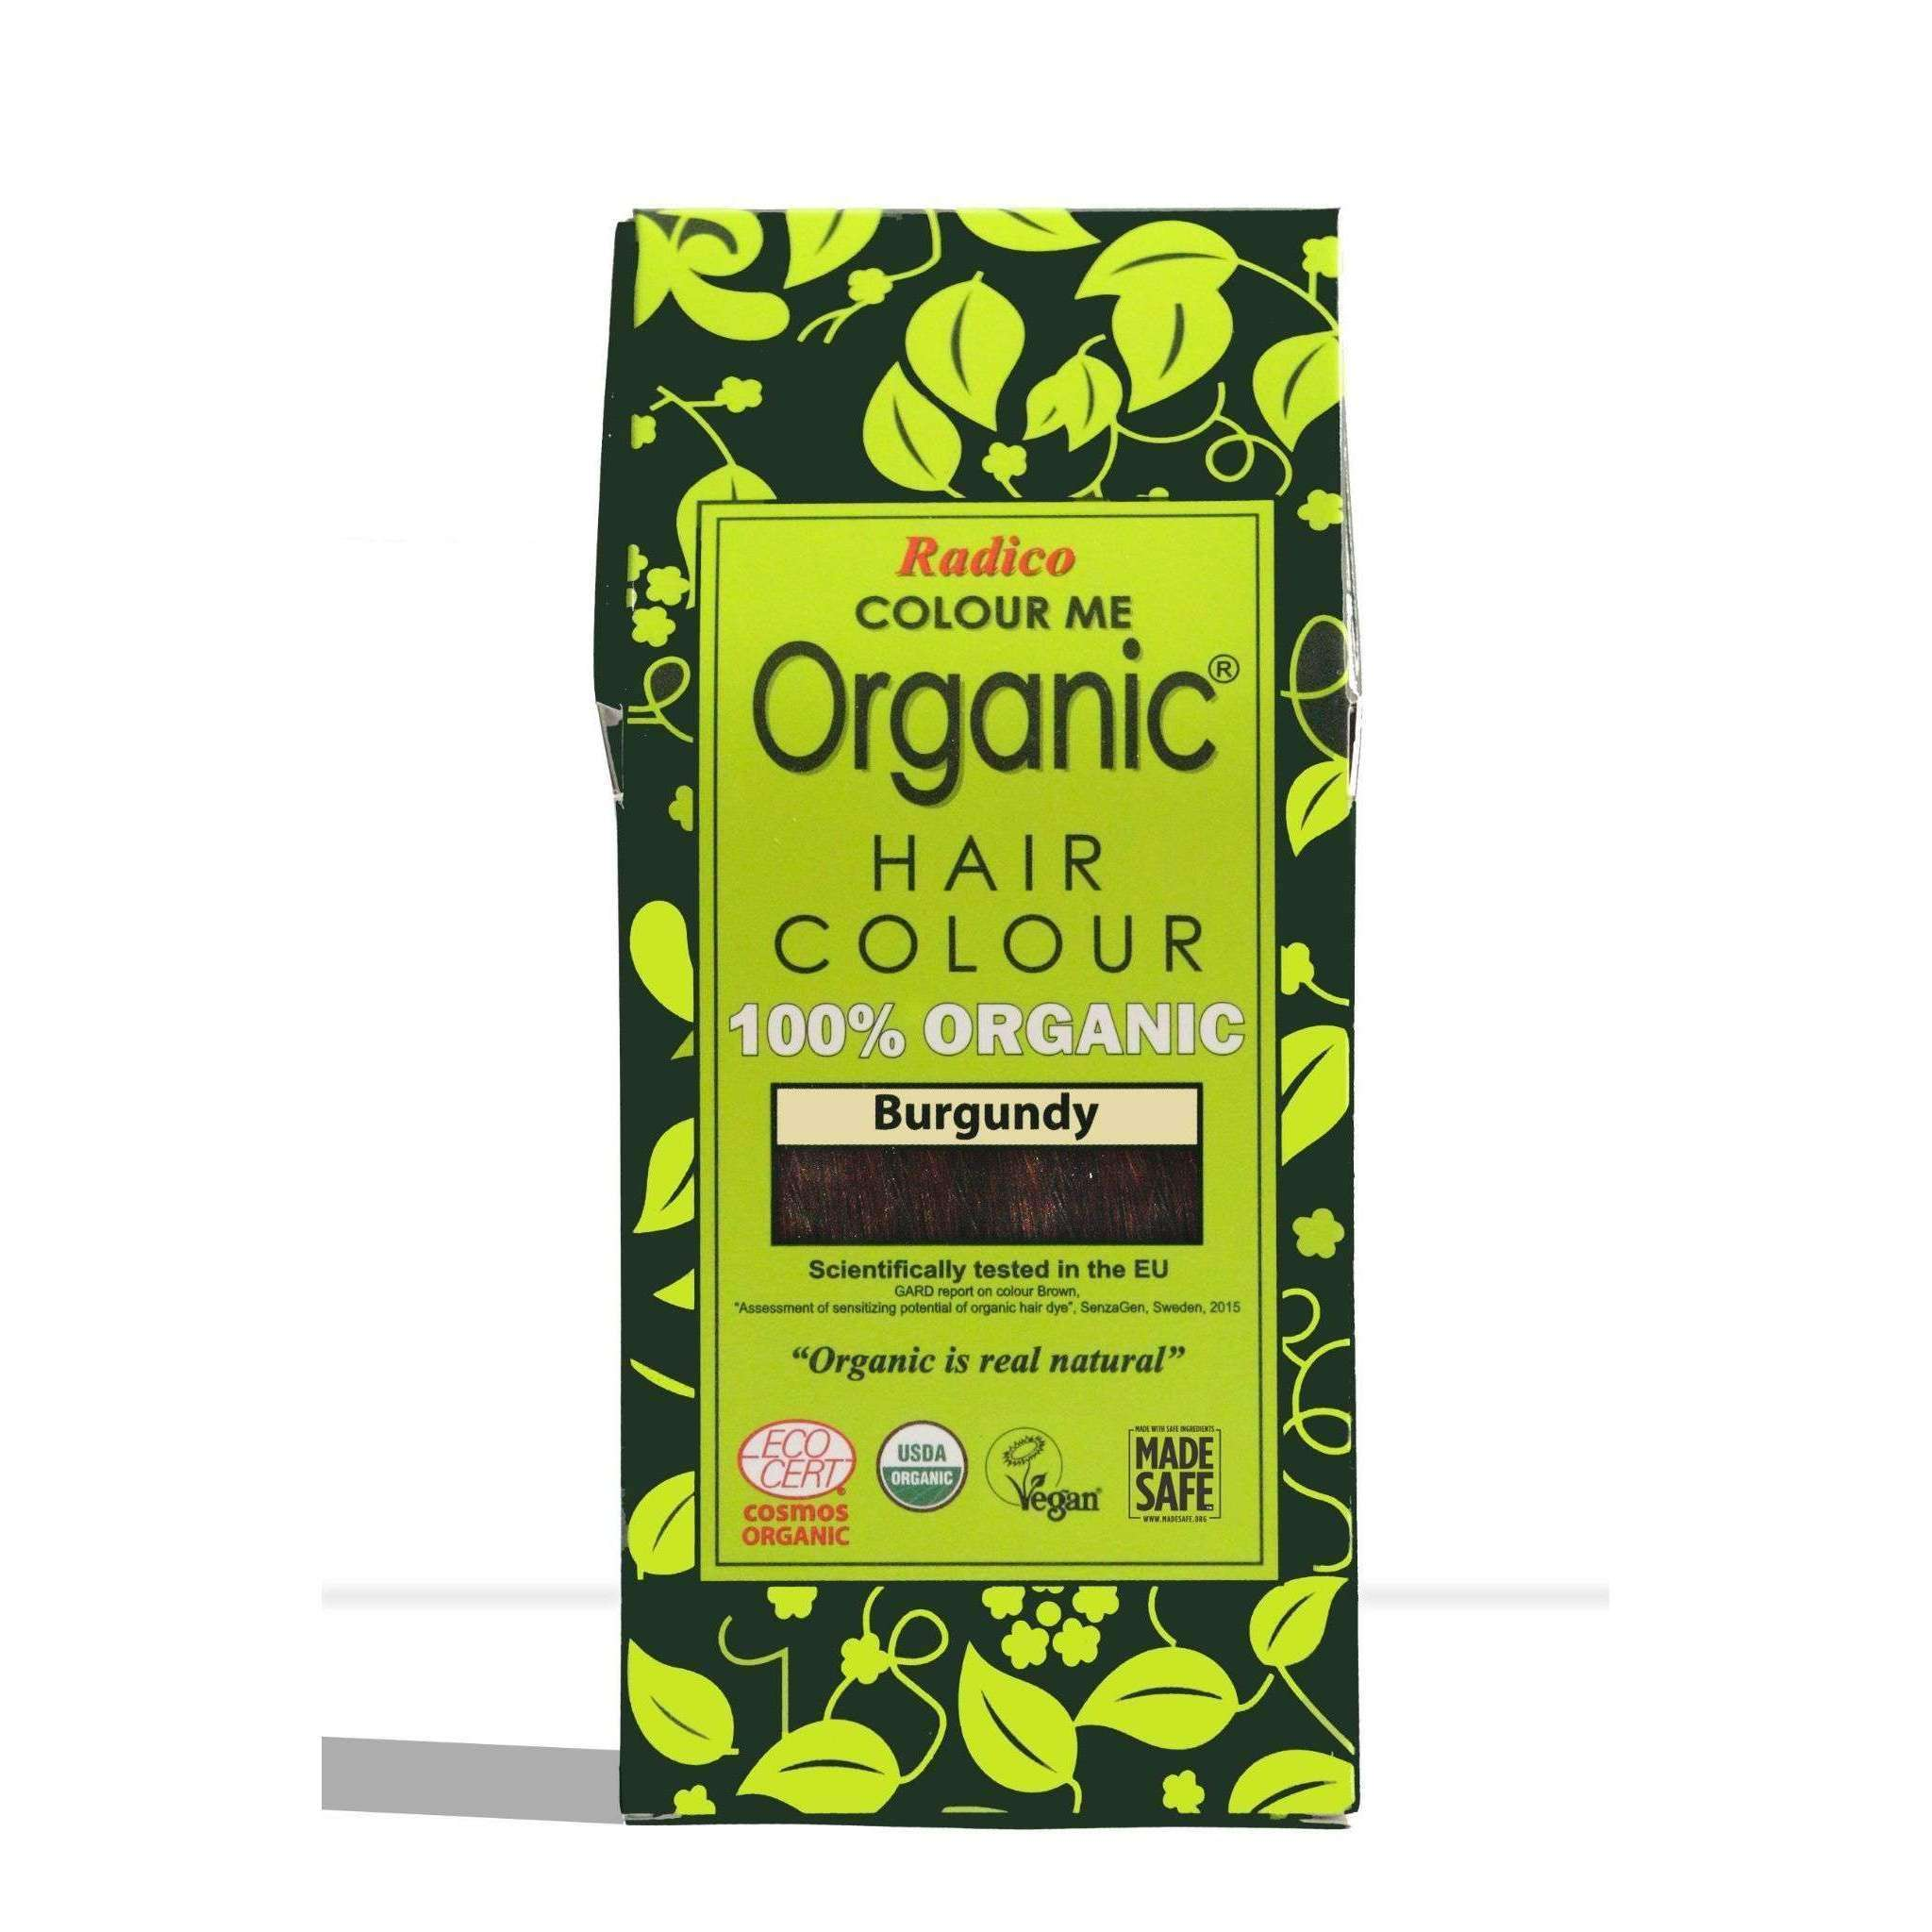 Radico Organic Hair Colour - Burgundy